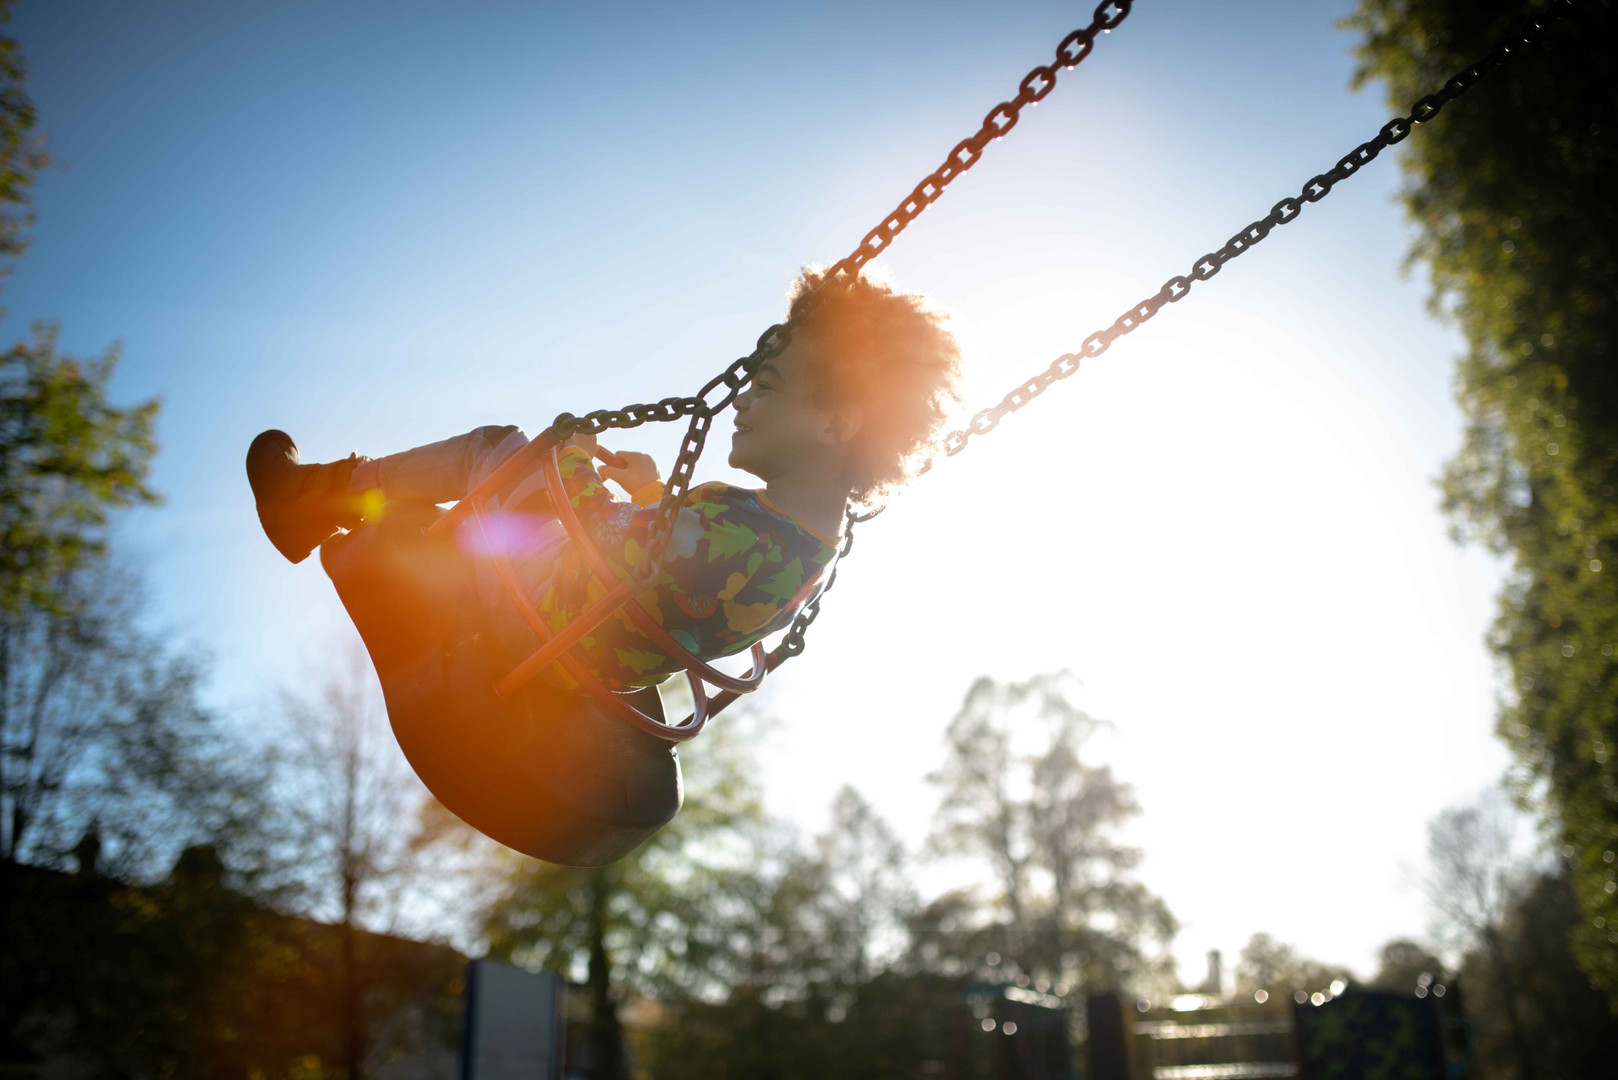 Child on a swing in the park